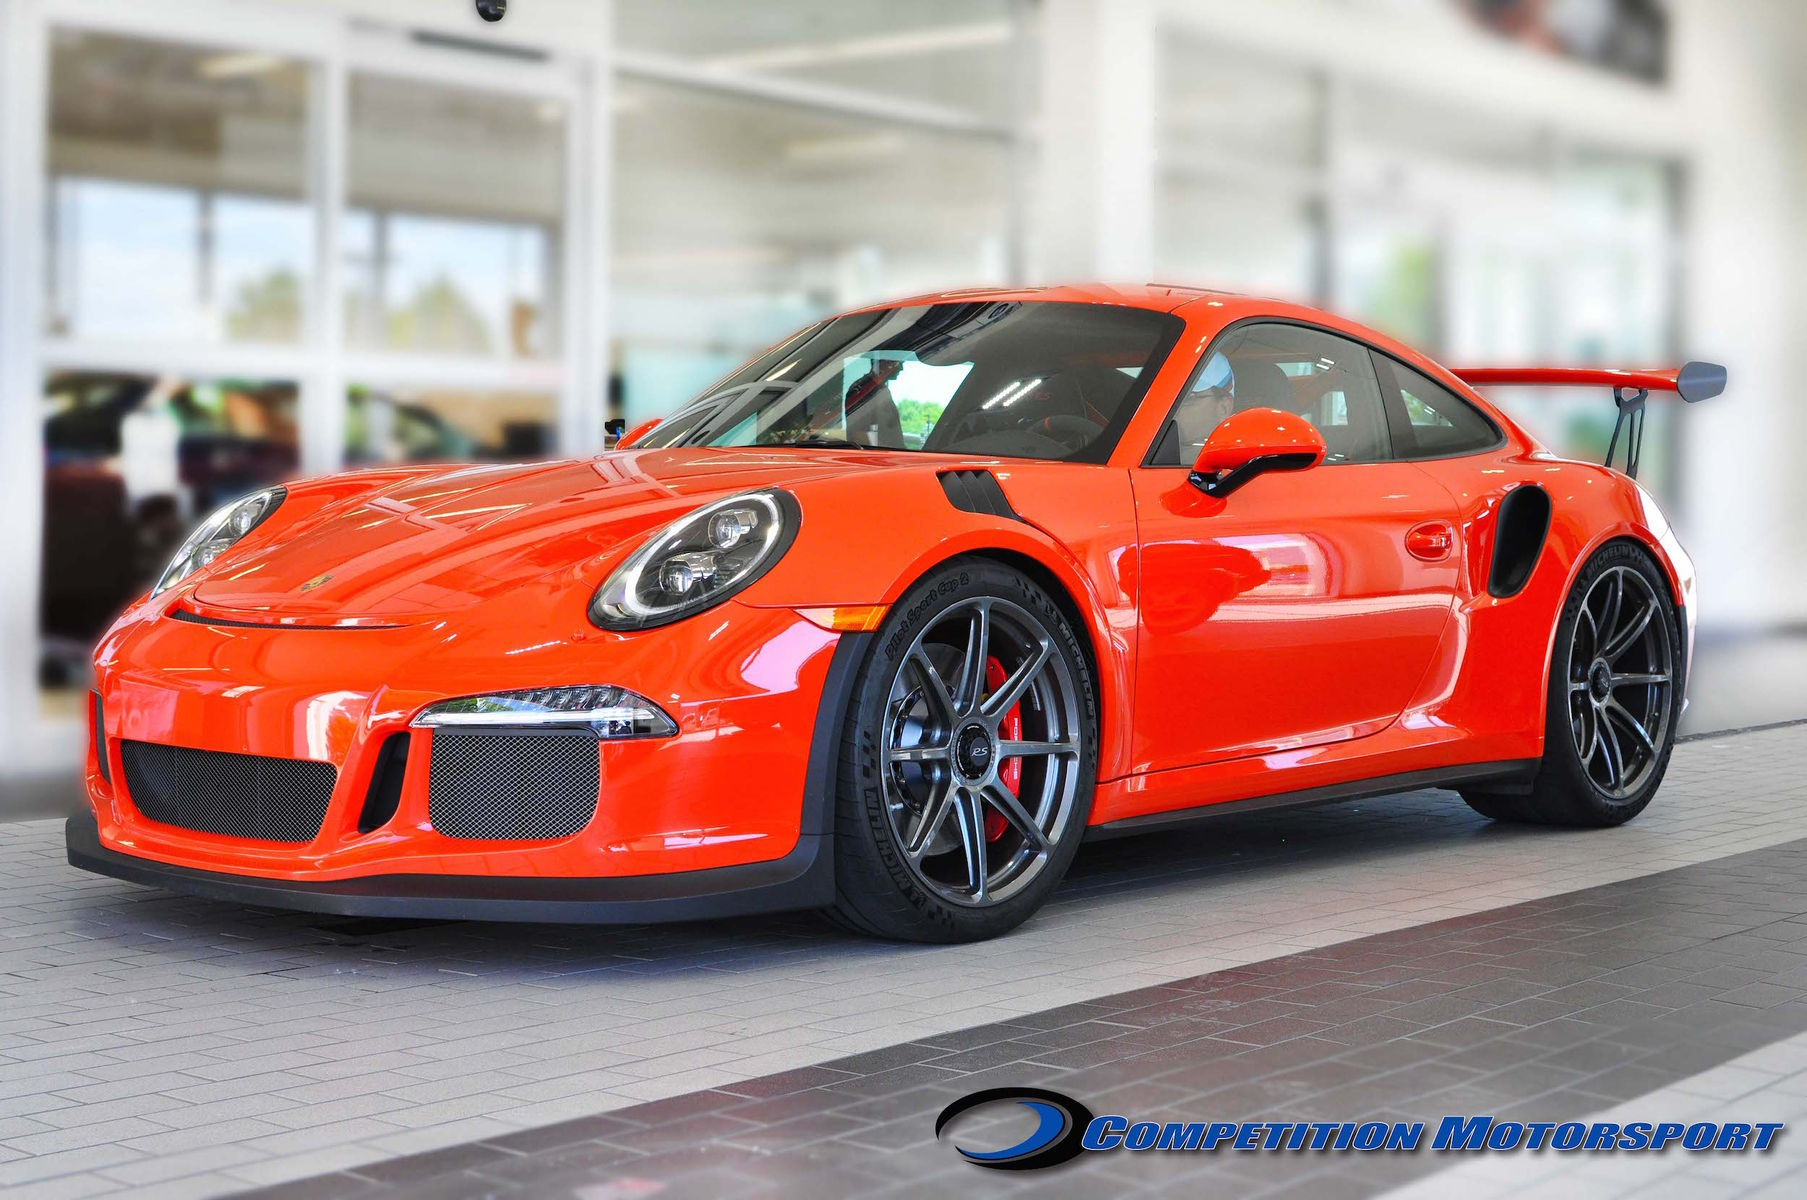 2016 Porsche 911 | Brian Ringwelski's Porsche 991 GT3RS on Forgeline One Piece Forged Monoblock GE1 Wheels